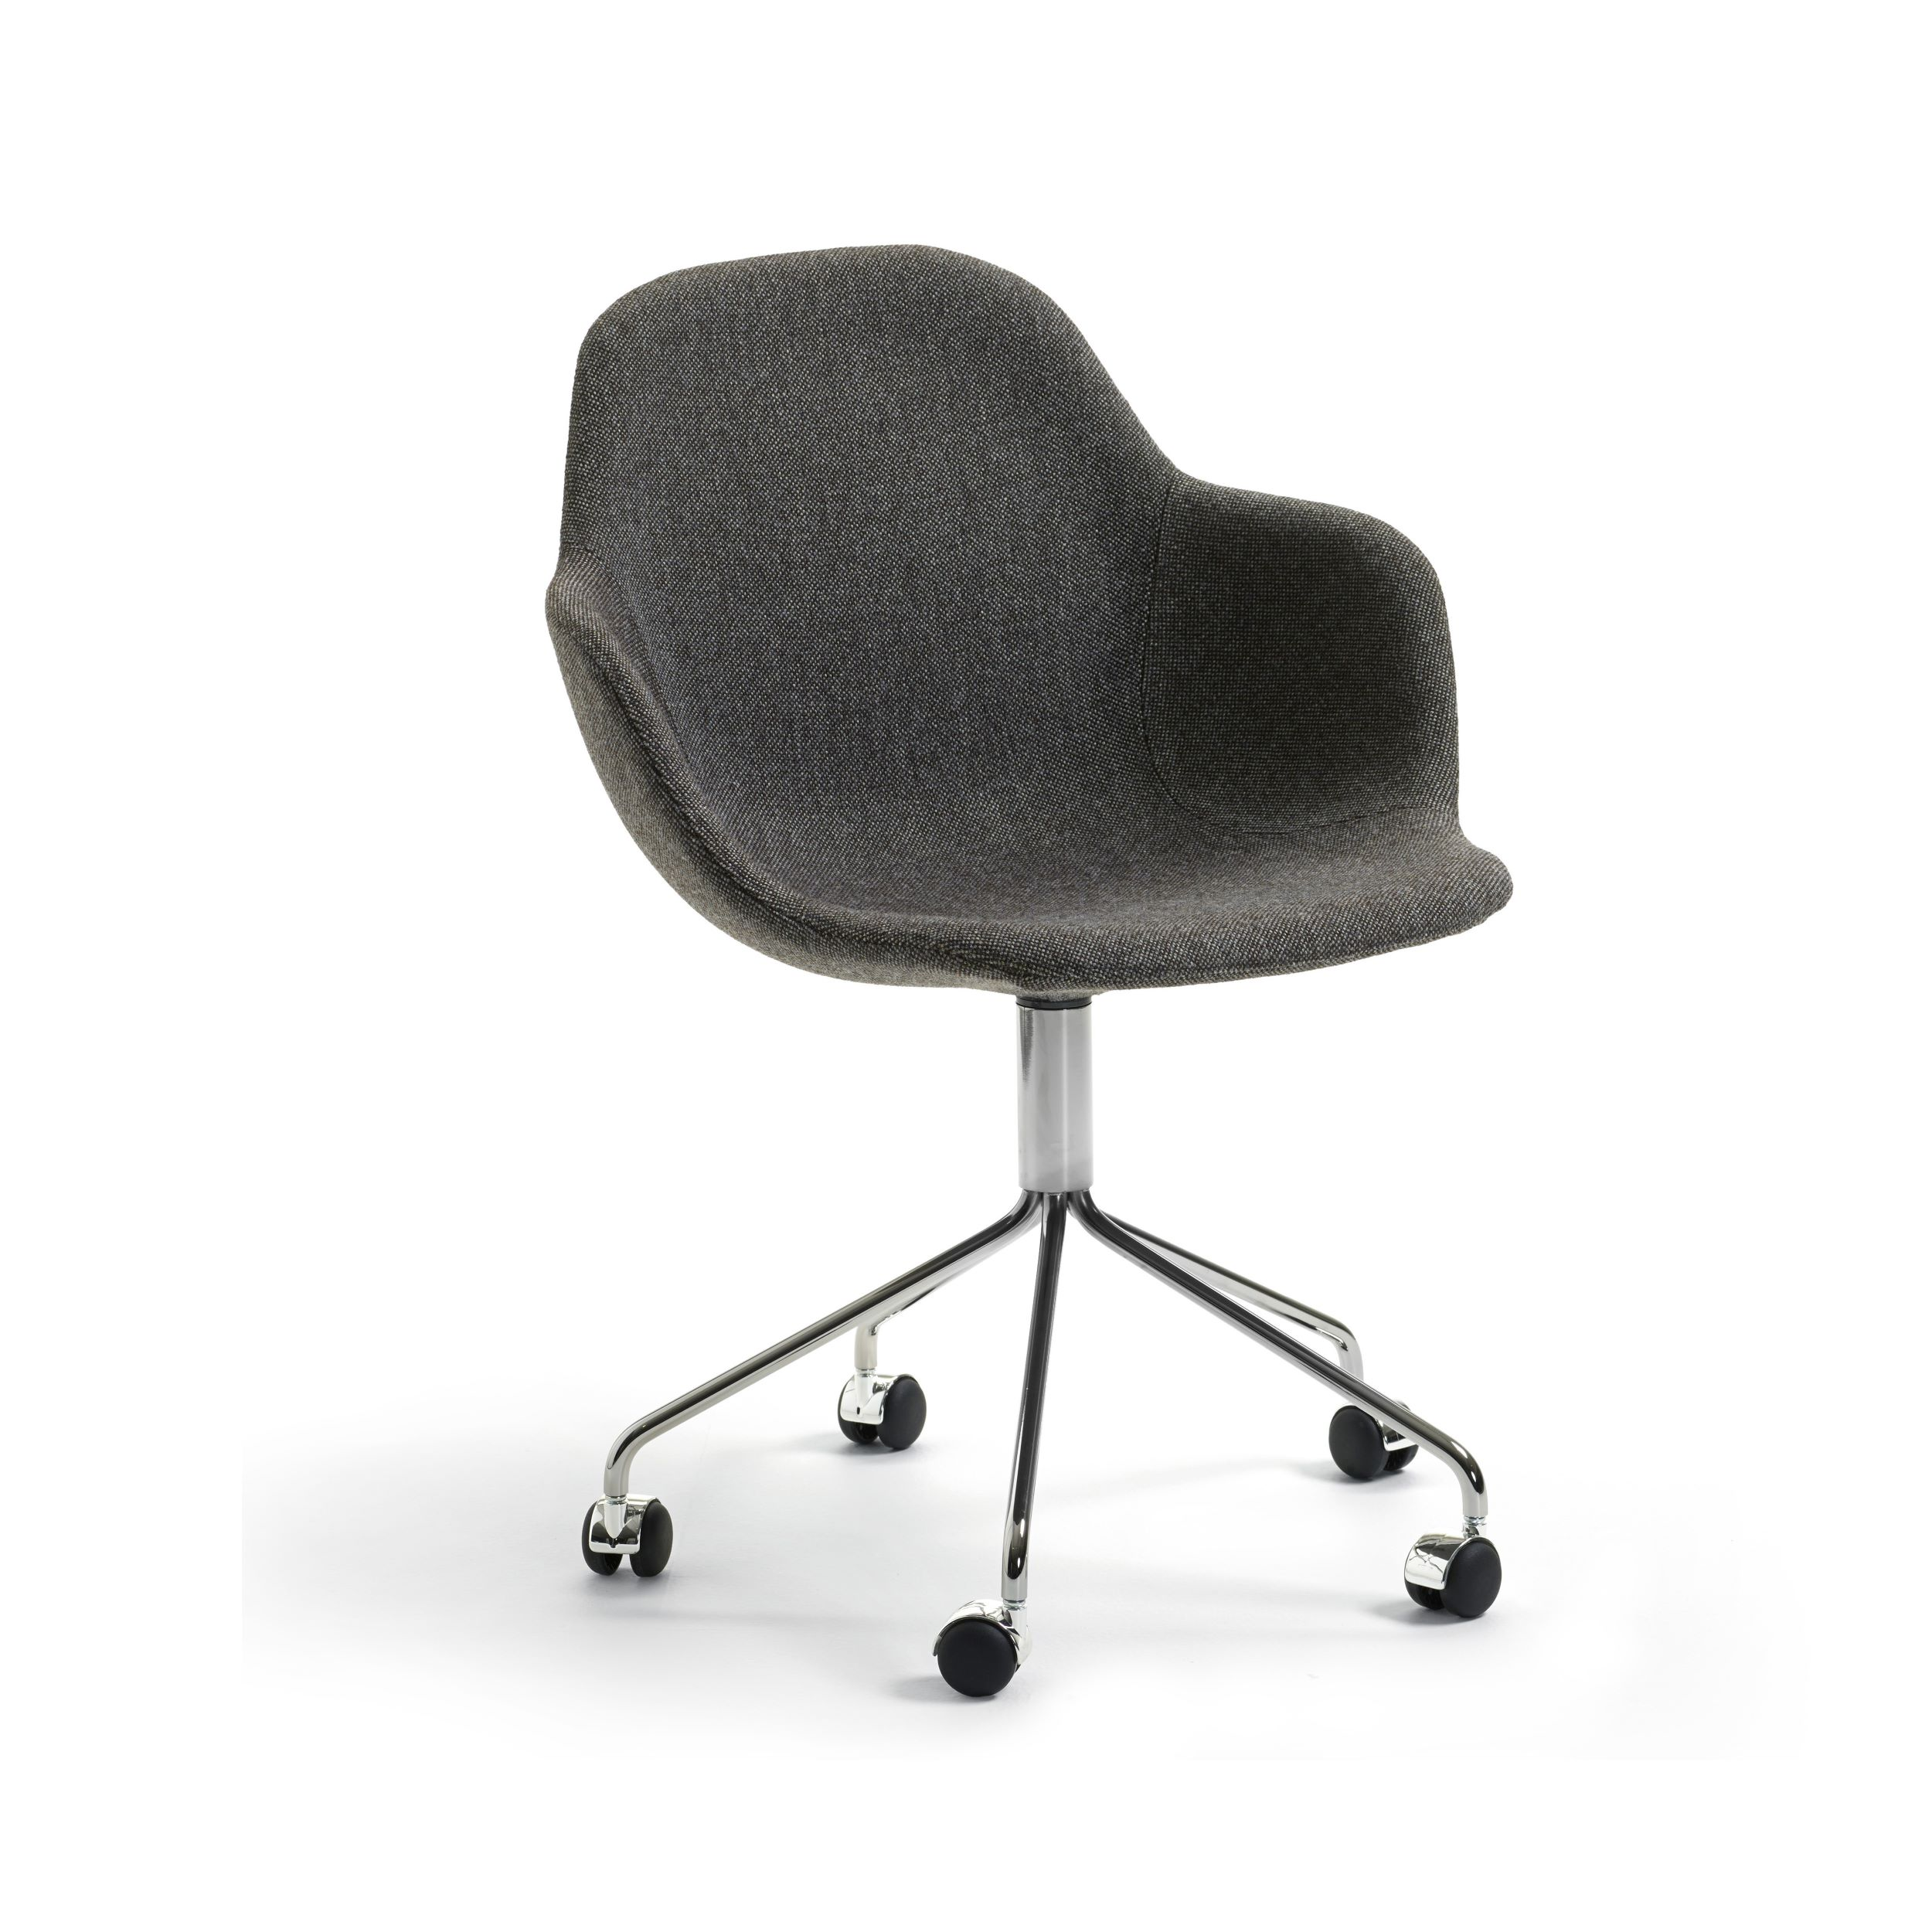 Palma Meeting Chair With Wheels For Offices Khodi Feiz